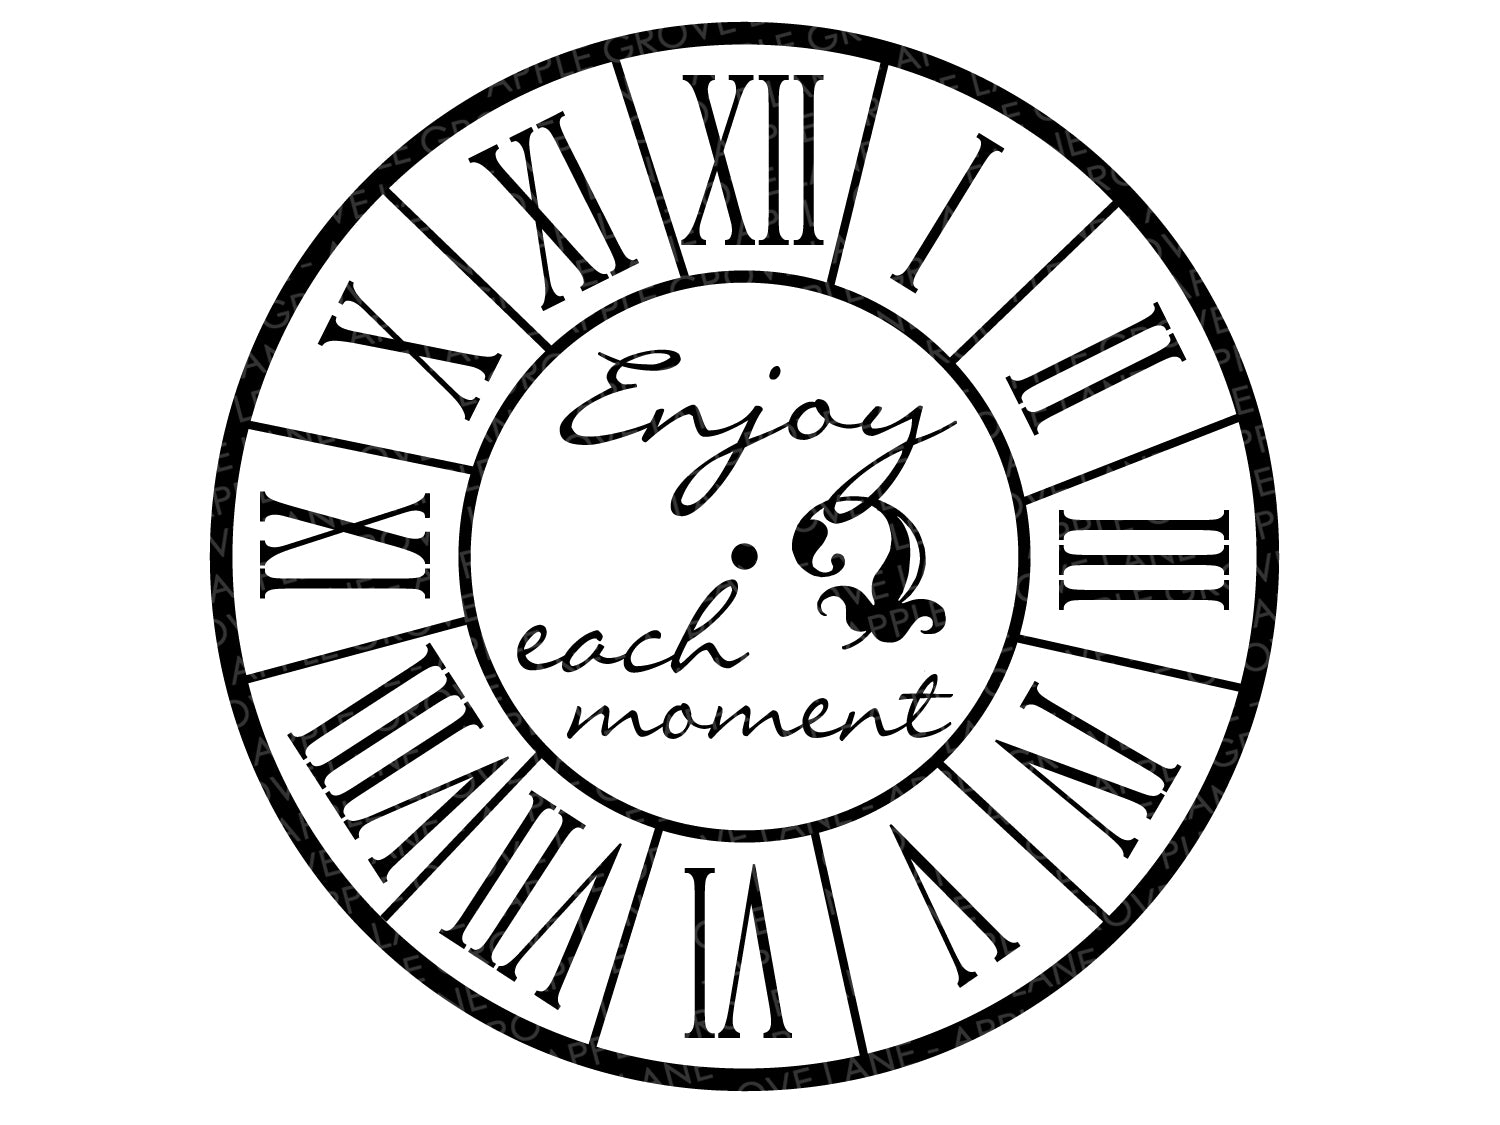 Roman Numeral Clock Svg - Clock Svg - Clock Face Svg - Svg Template - Romen Numerals Svg - Clock Stencil - Svg Eps Png Dxf